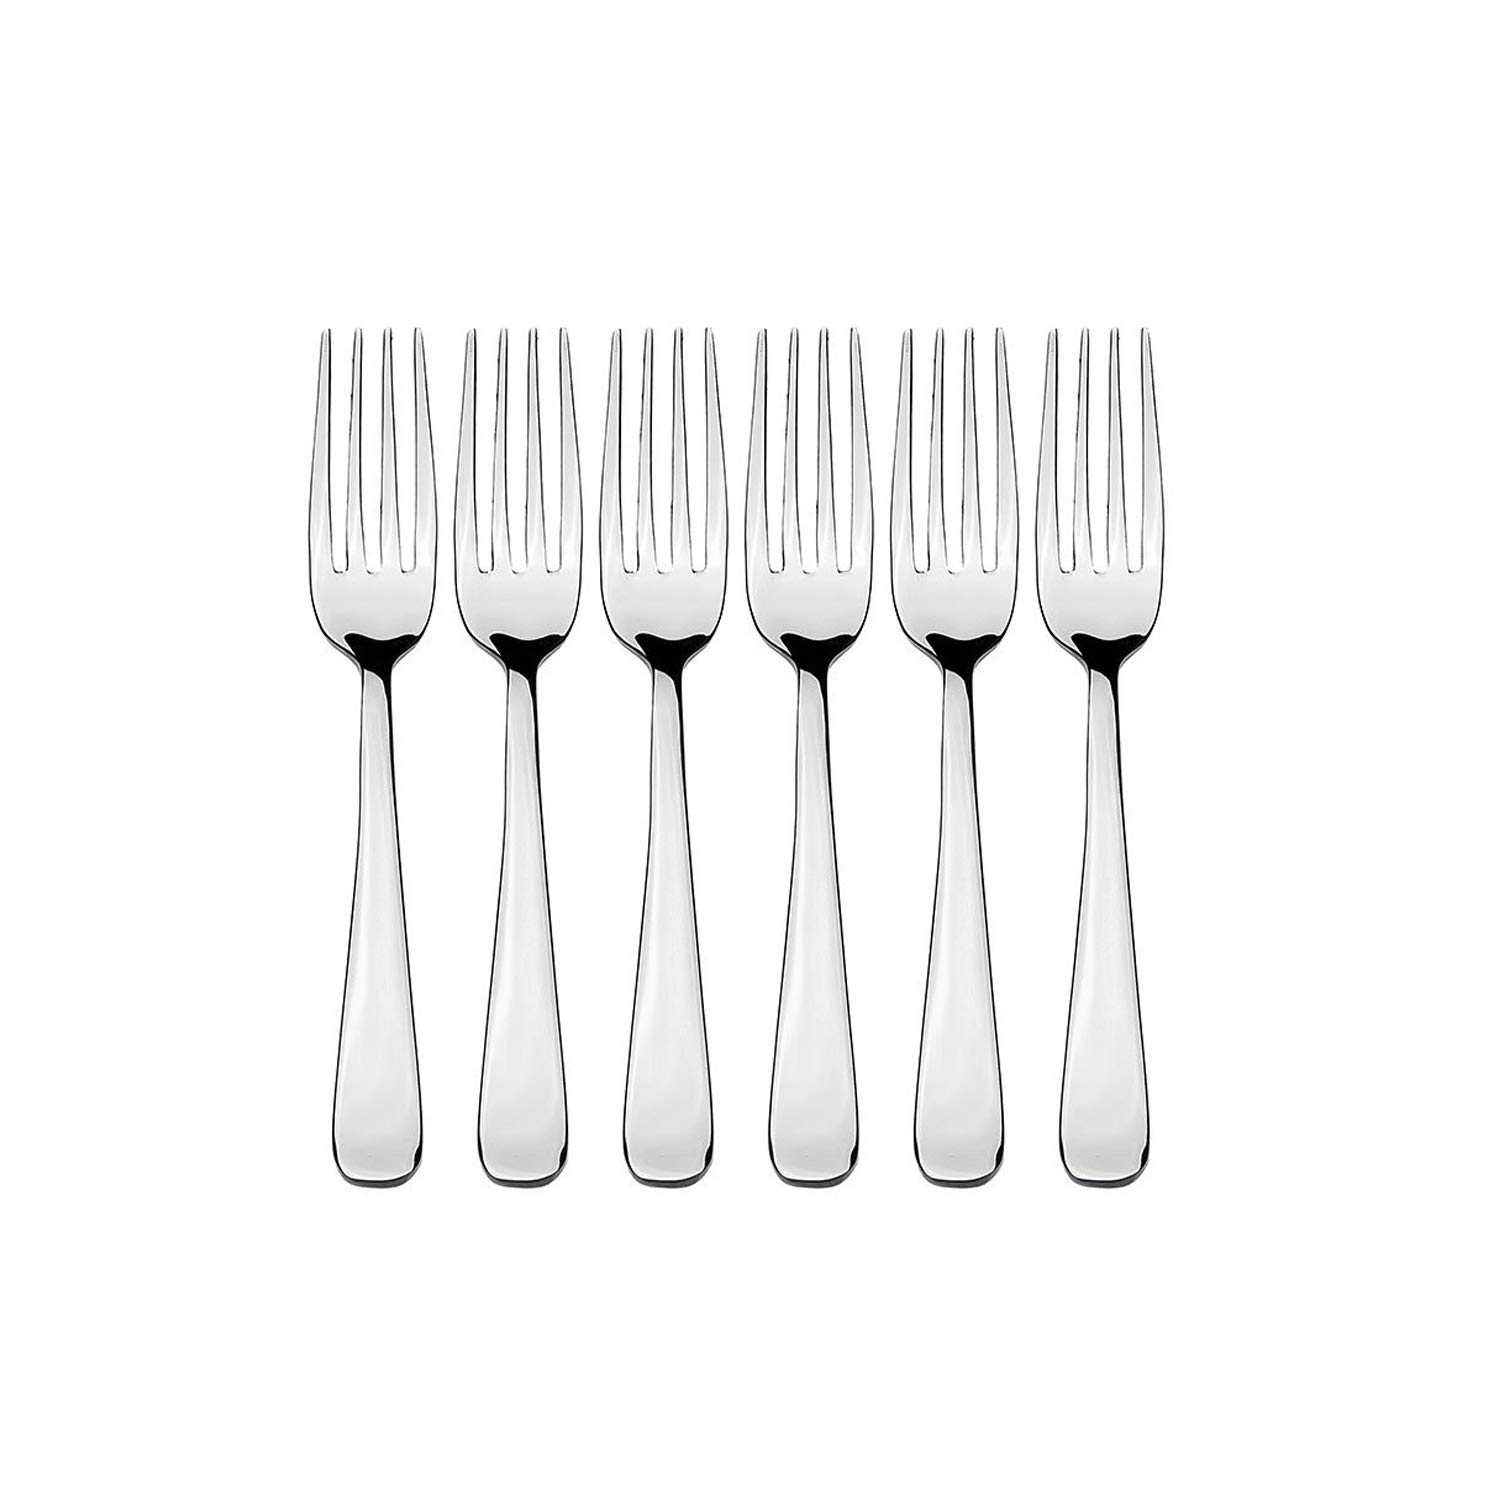 Goldtree Stainless Steel Fruit Fork Spoon (set Of 12 Pcs)